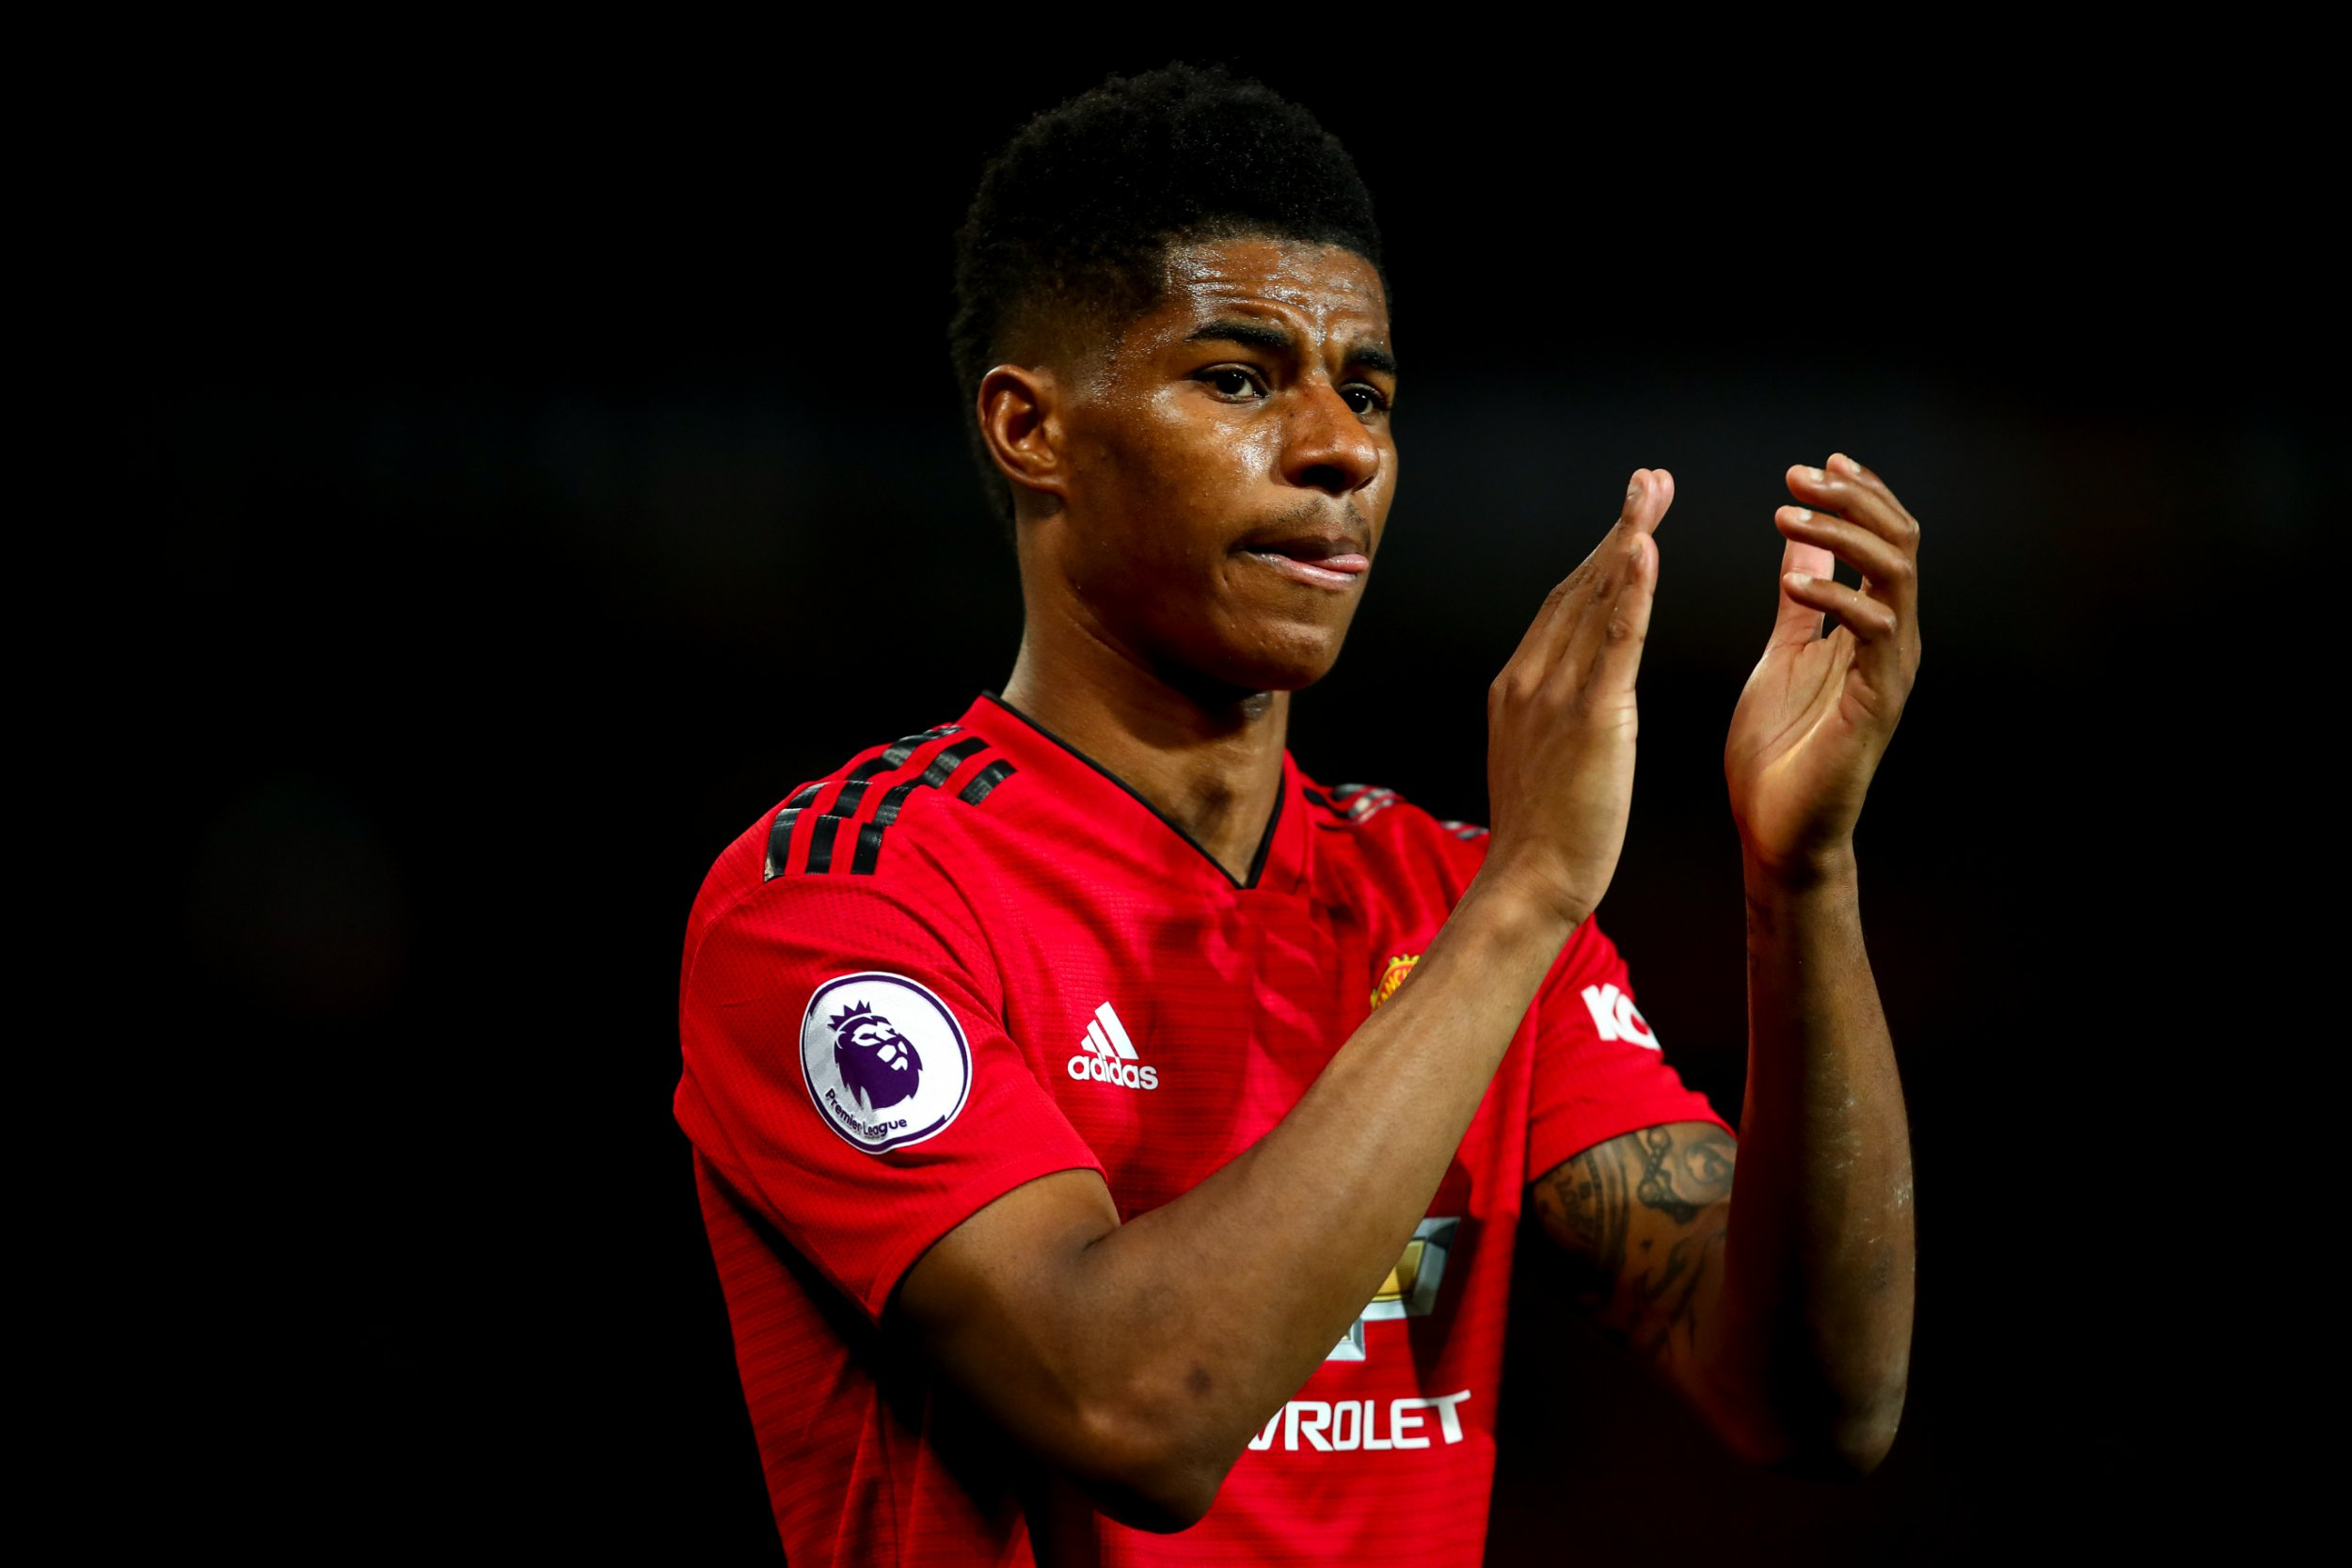 Marcus Rashford claims Manchester United players won't call each other out after Manchester City defeat